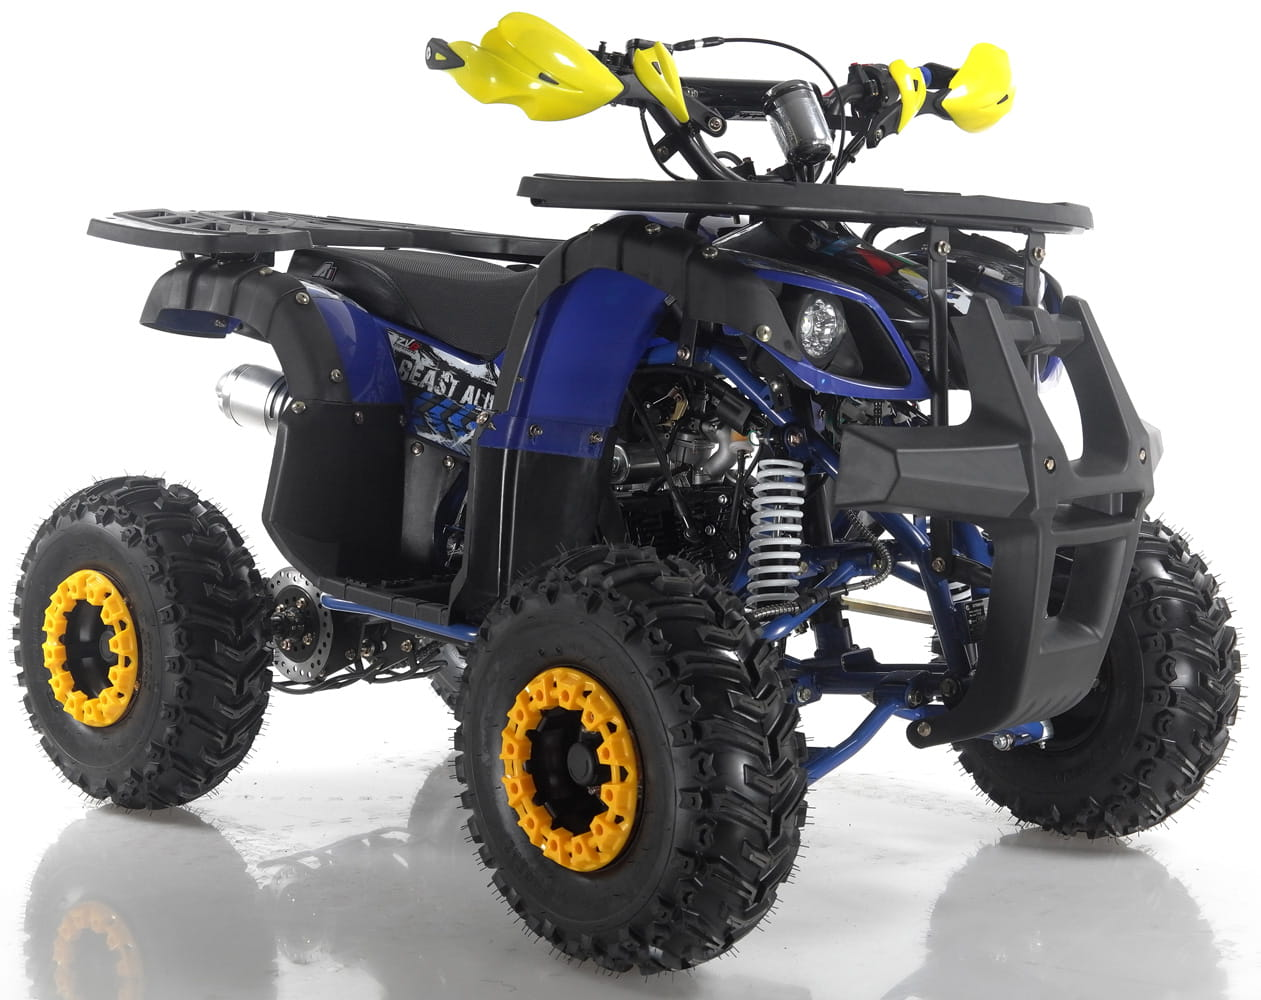 QUAD APOLLO GRIZZLY GRYZLI 110CCM 7